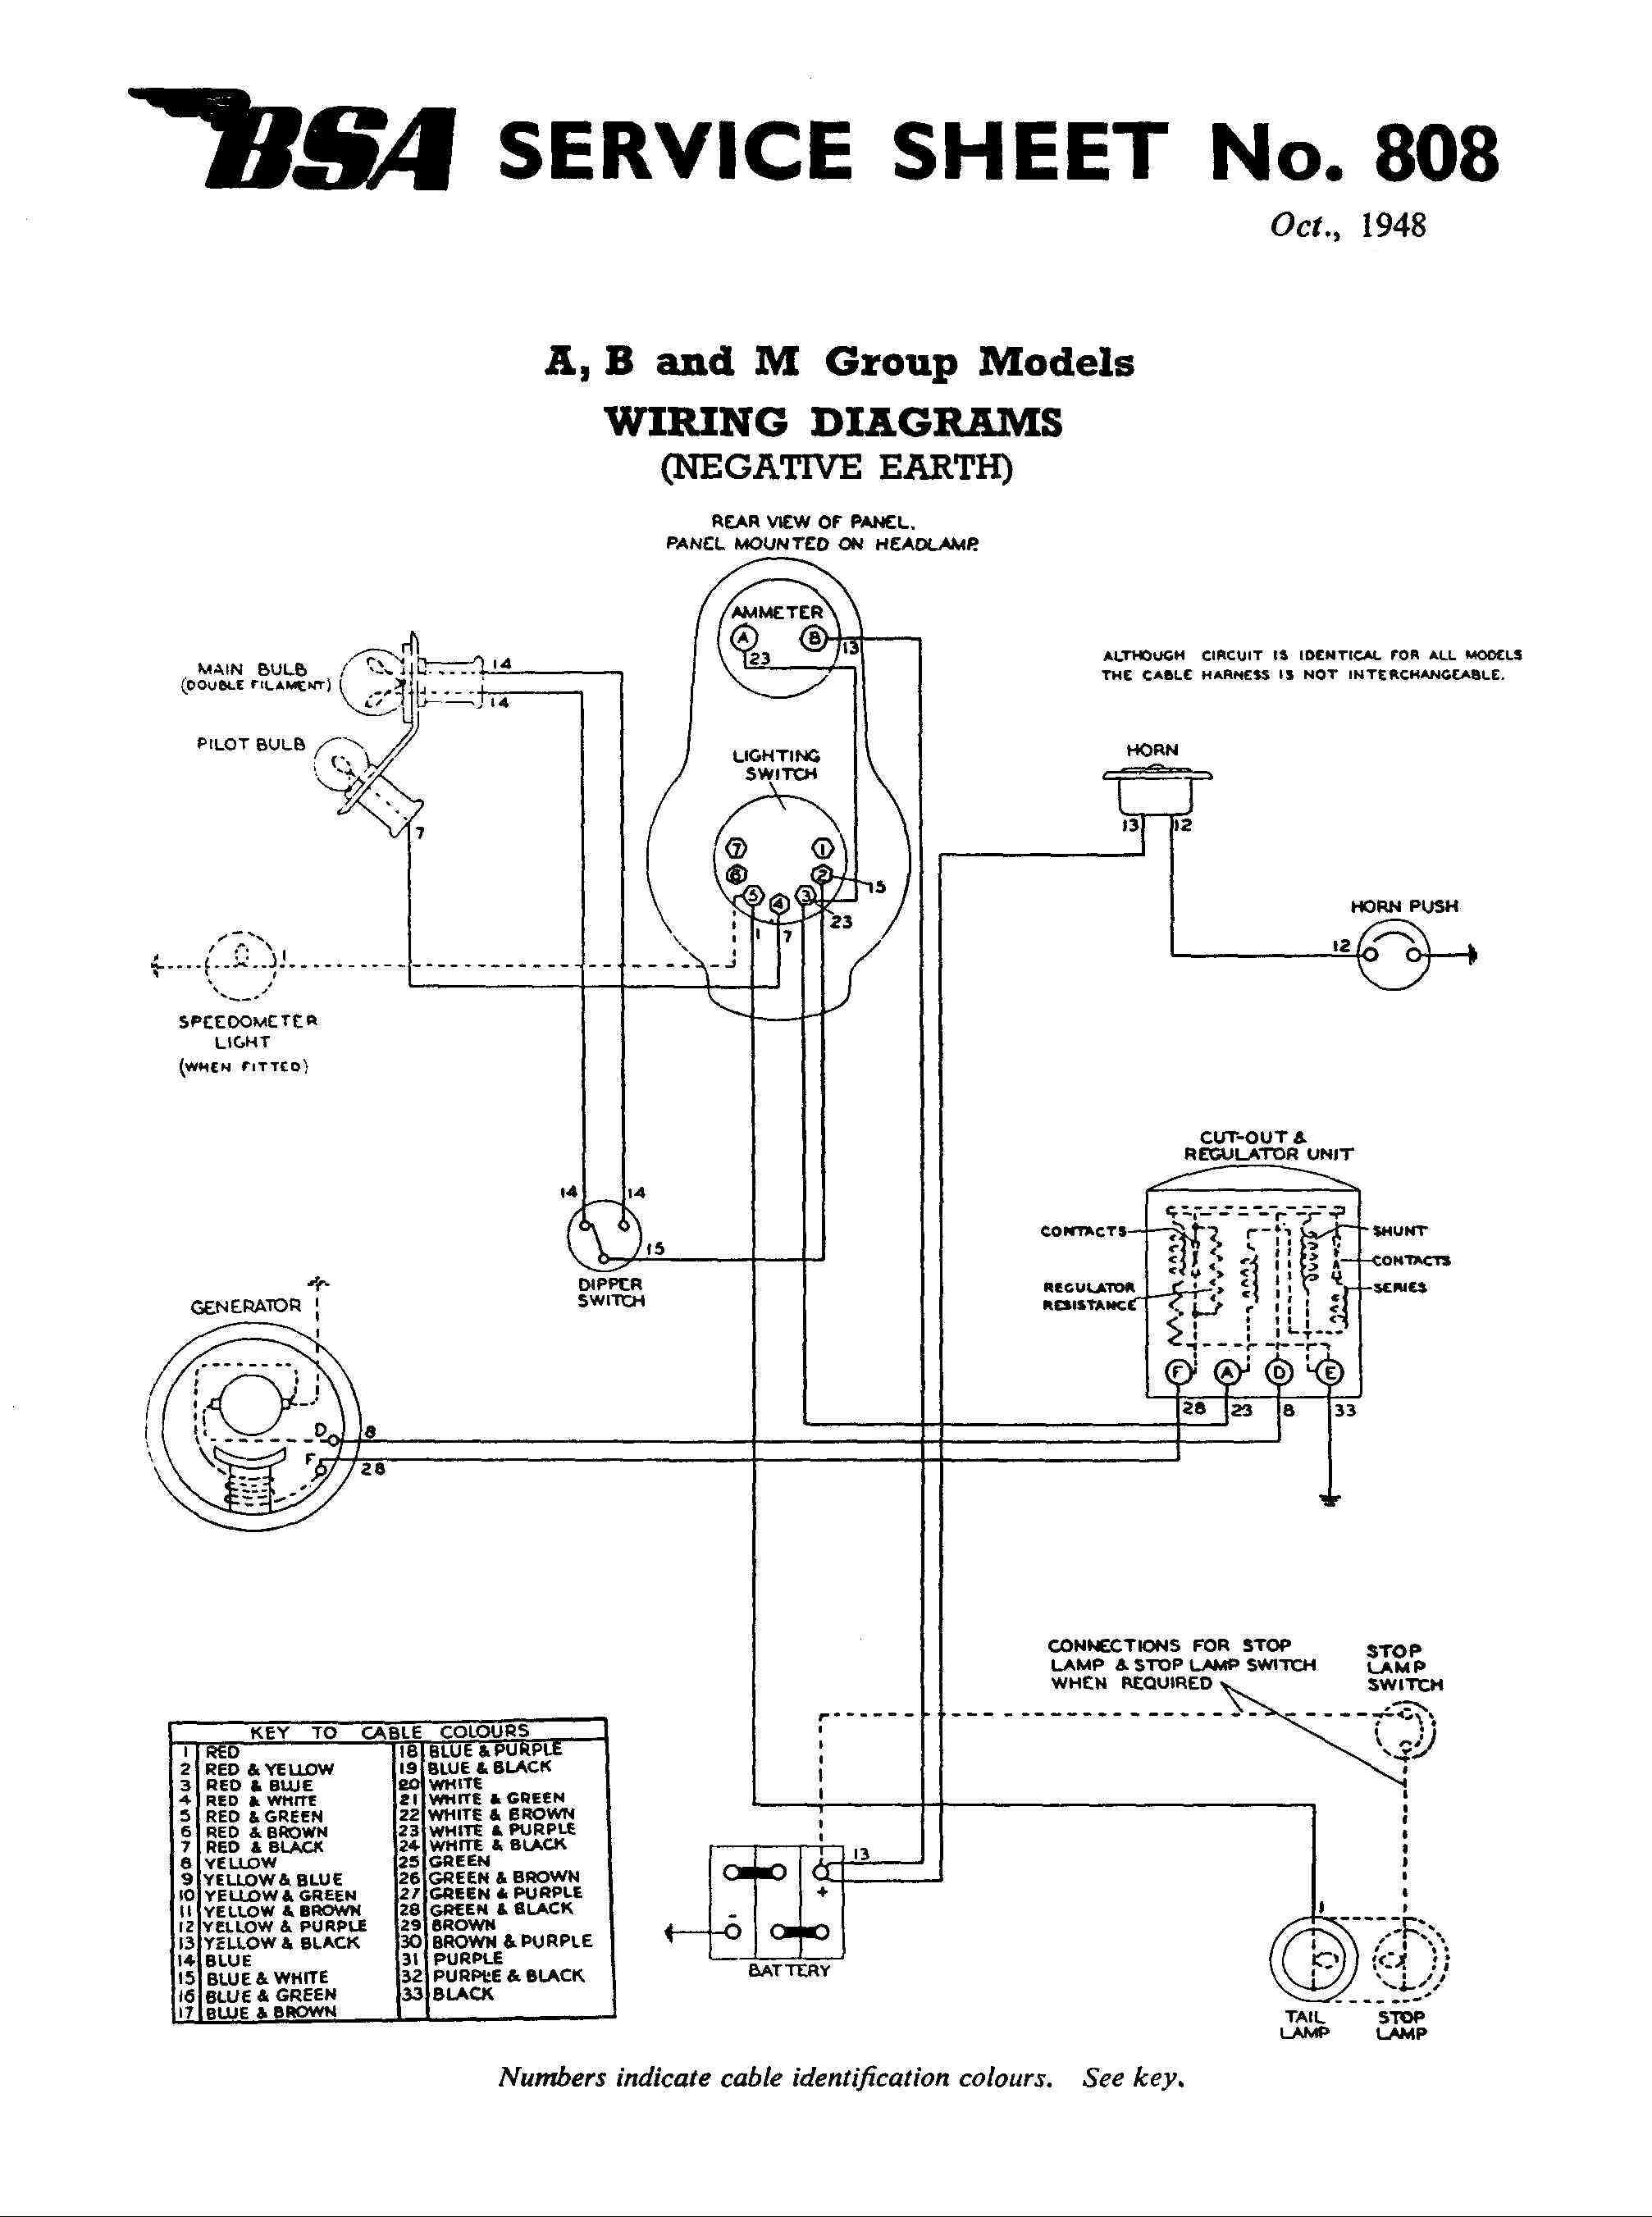 pollak wiring diagram most searched wiring diagram right now \u2022 pollak connectors wiring diagram pollak ignition wiring diagram get free image about pollak trailer plug wiring diagram pollak trailer plug wiring diagram